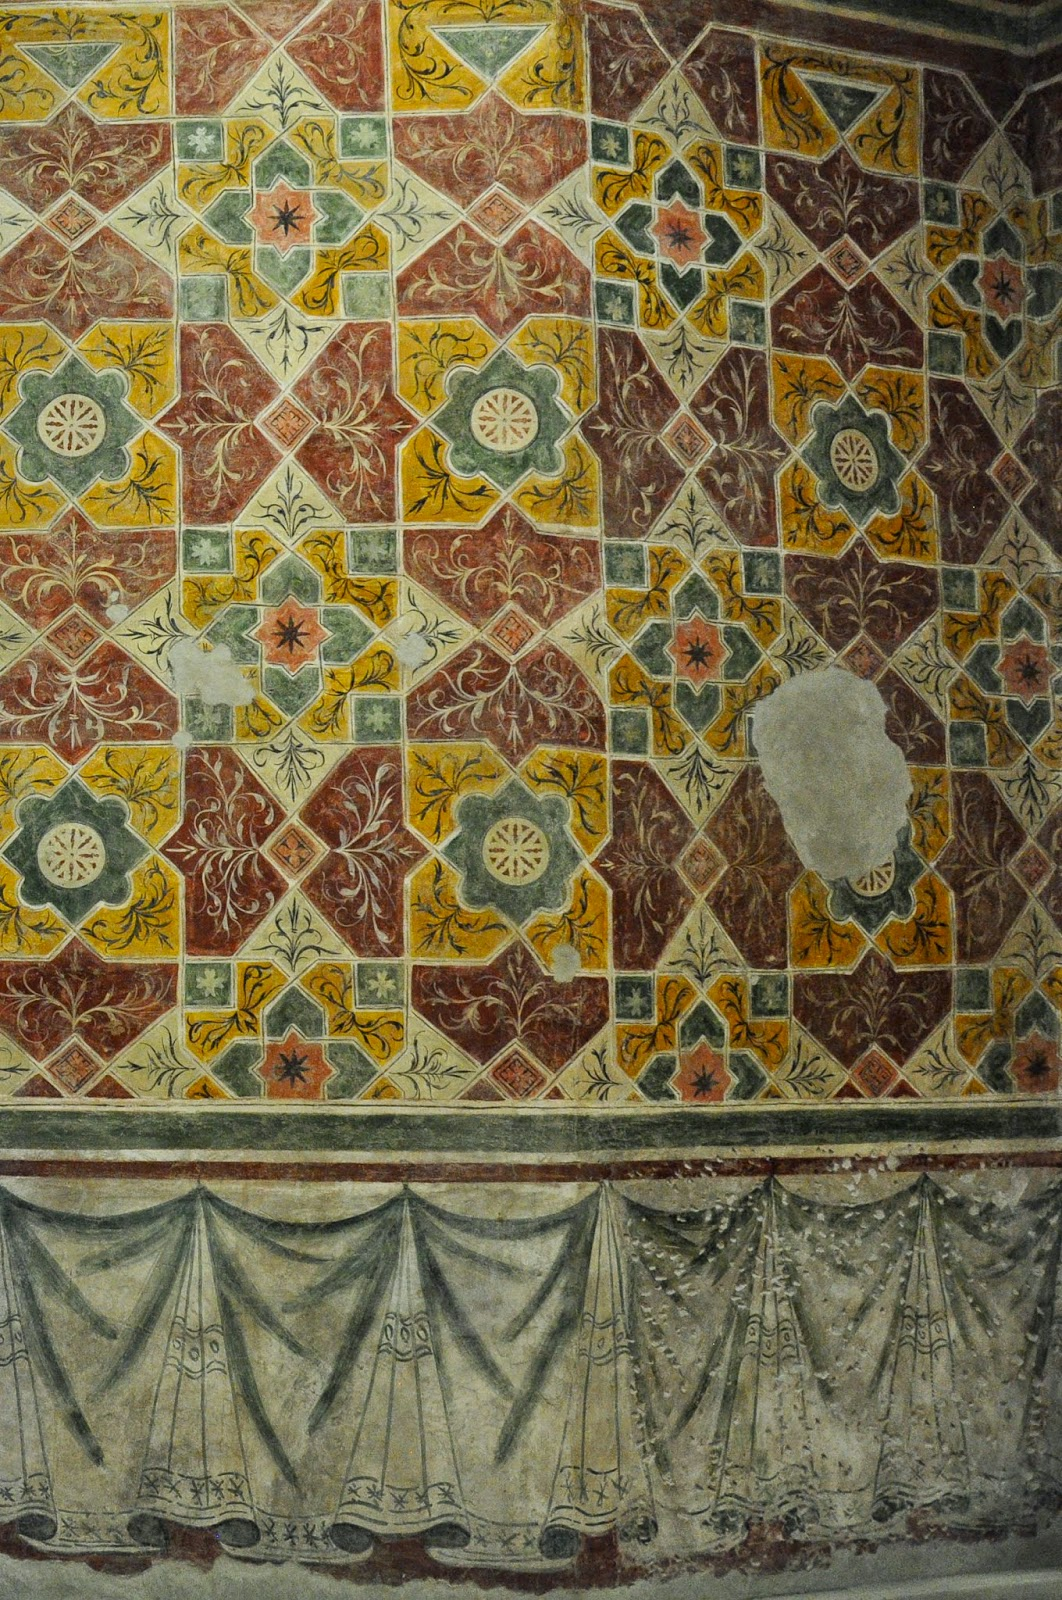 Preserved painted wall of a room in the Museum of Castelvecchio in Verona